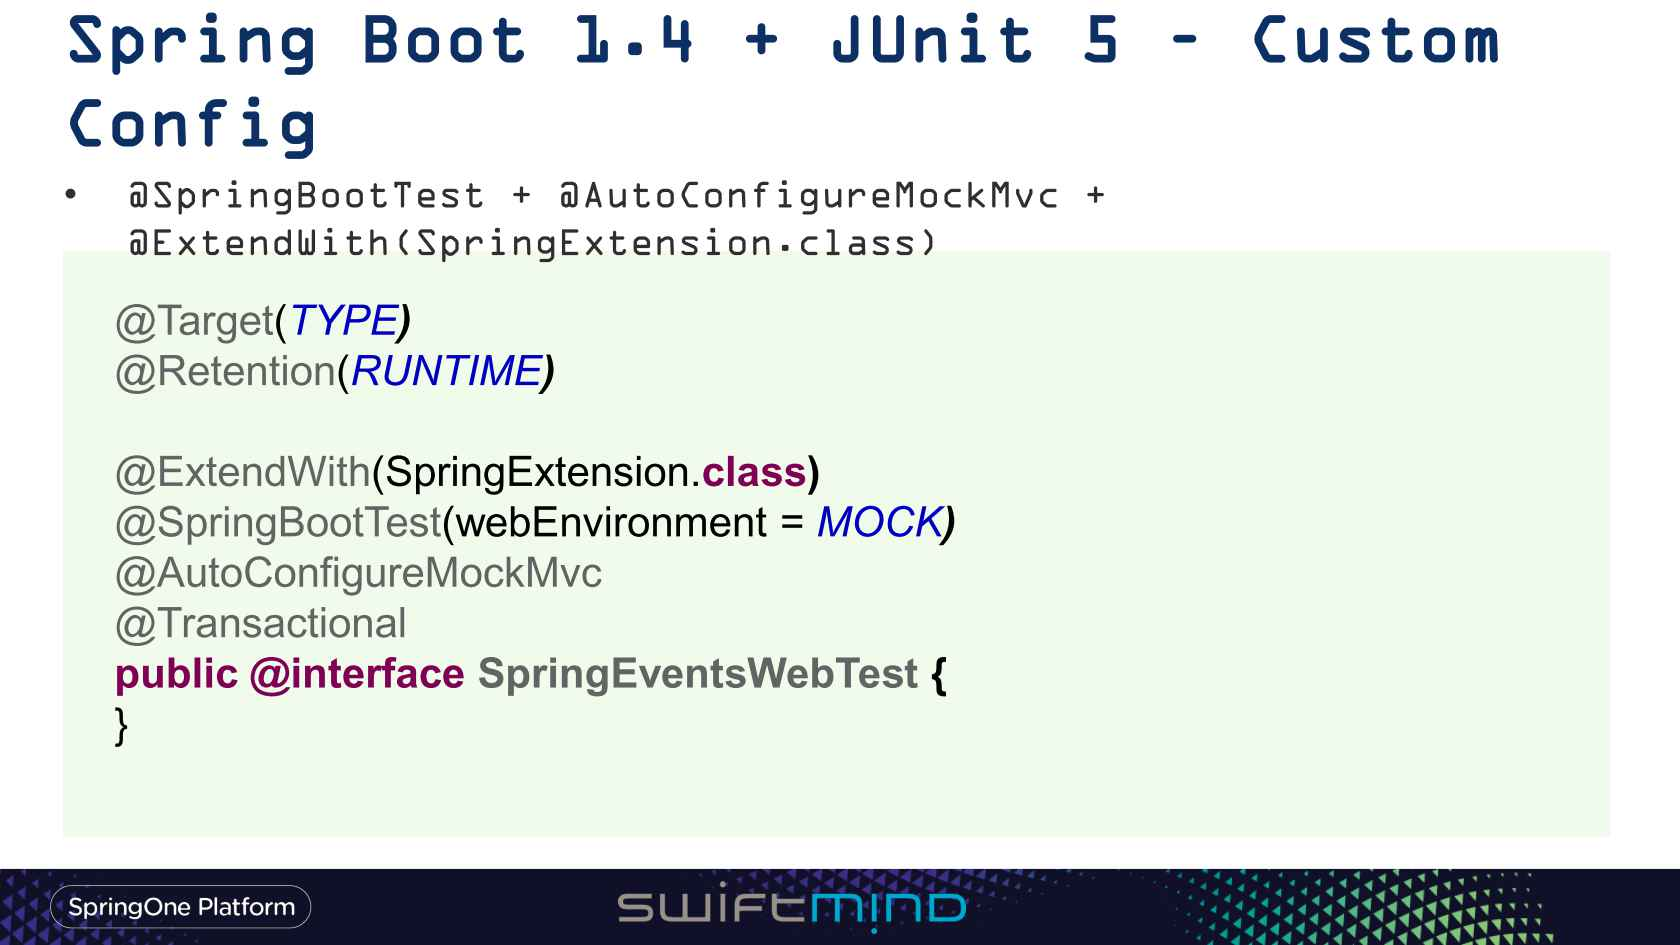 Testing with Spring 4 3, JUnit 5, and beyond